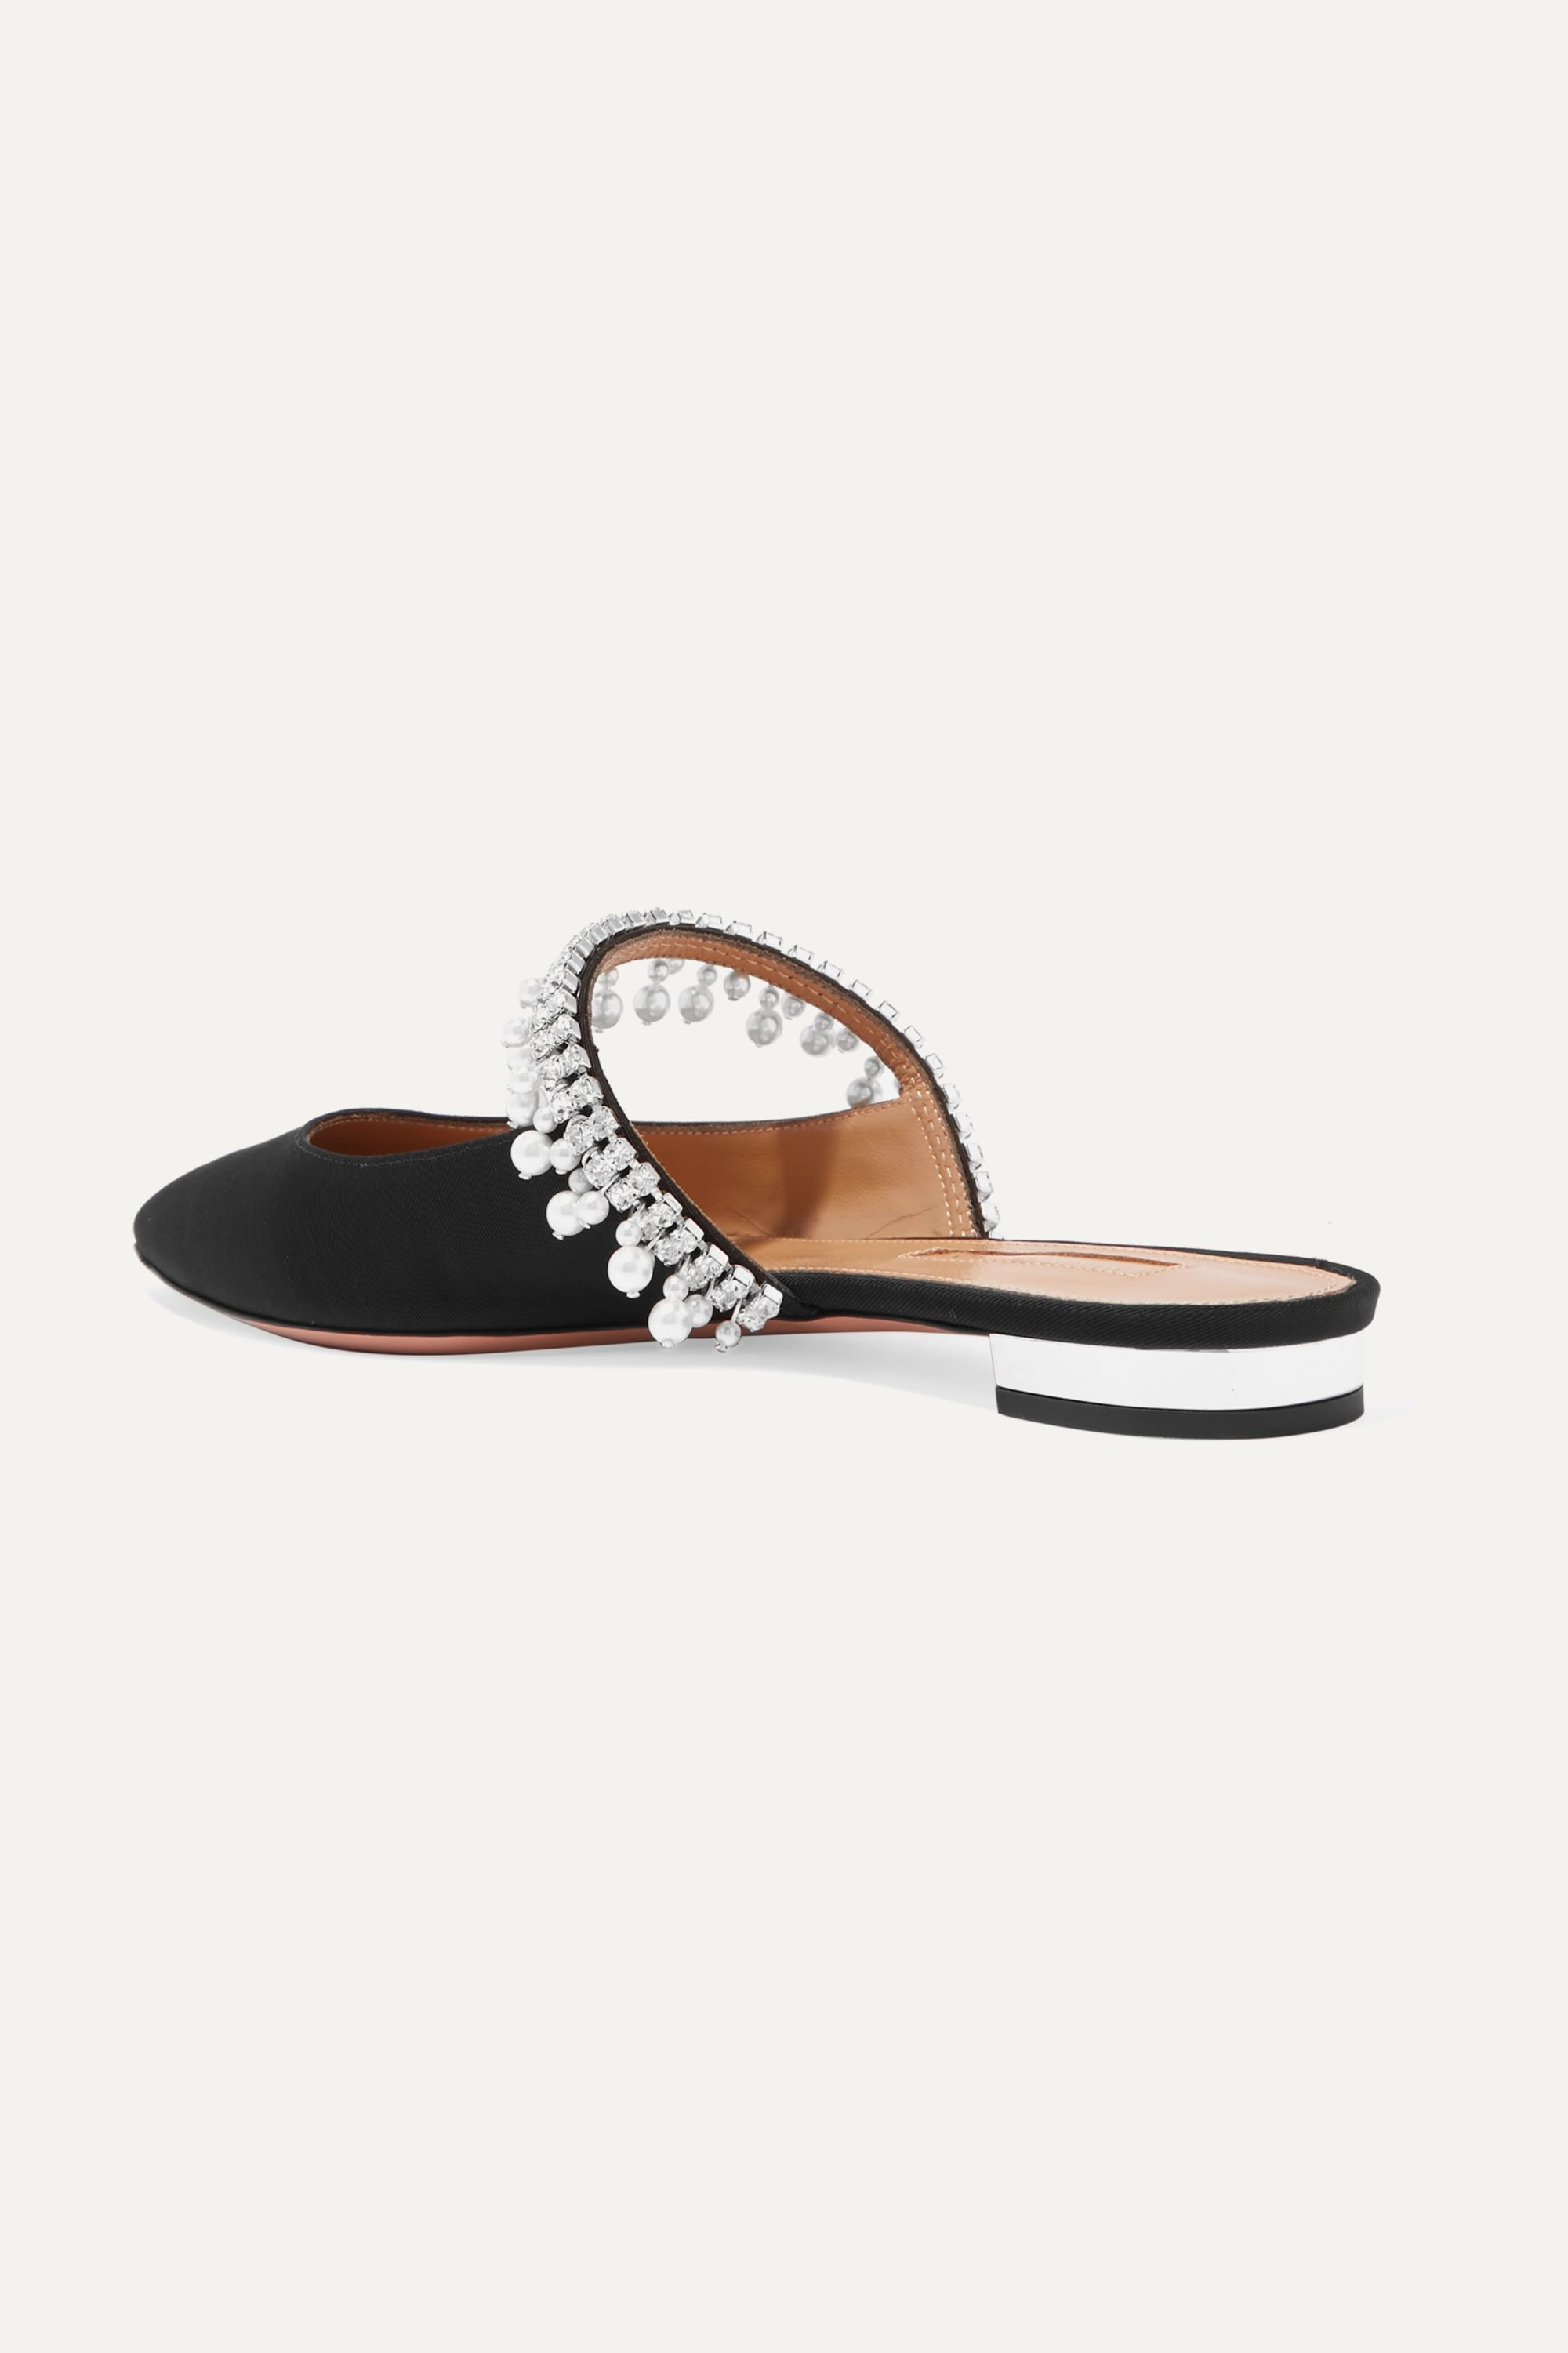 Aquazzura Exquisite crystal and faux pearl-embellished grosgrain slippers